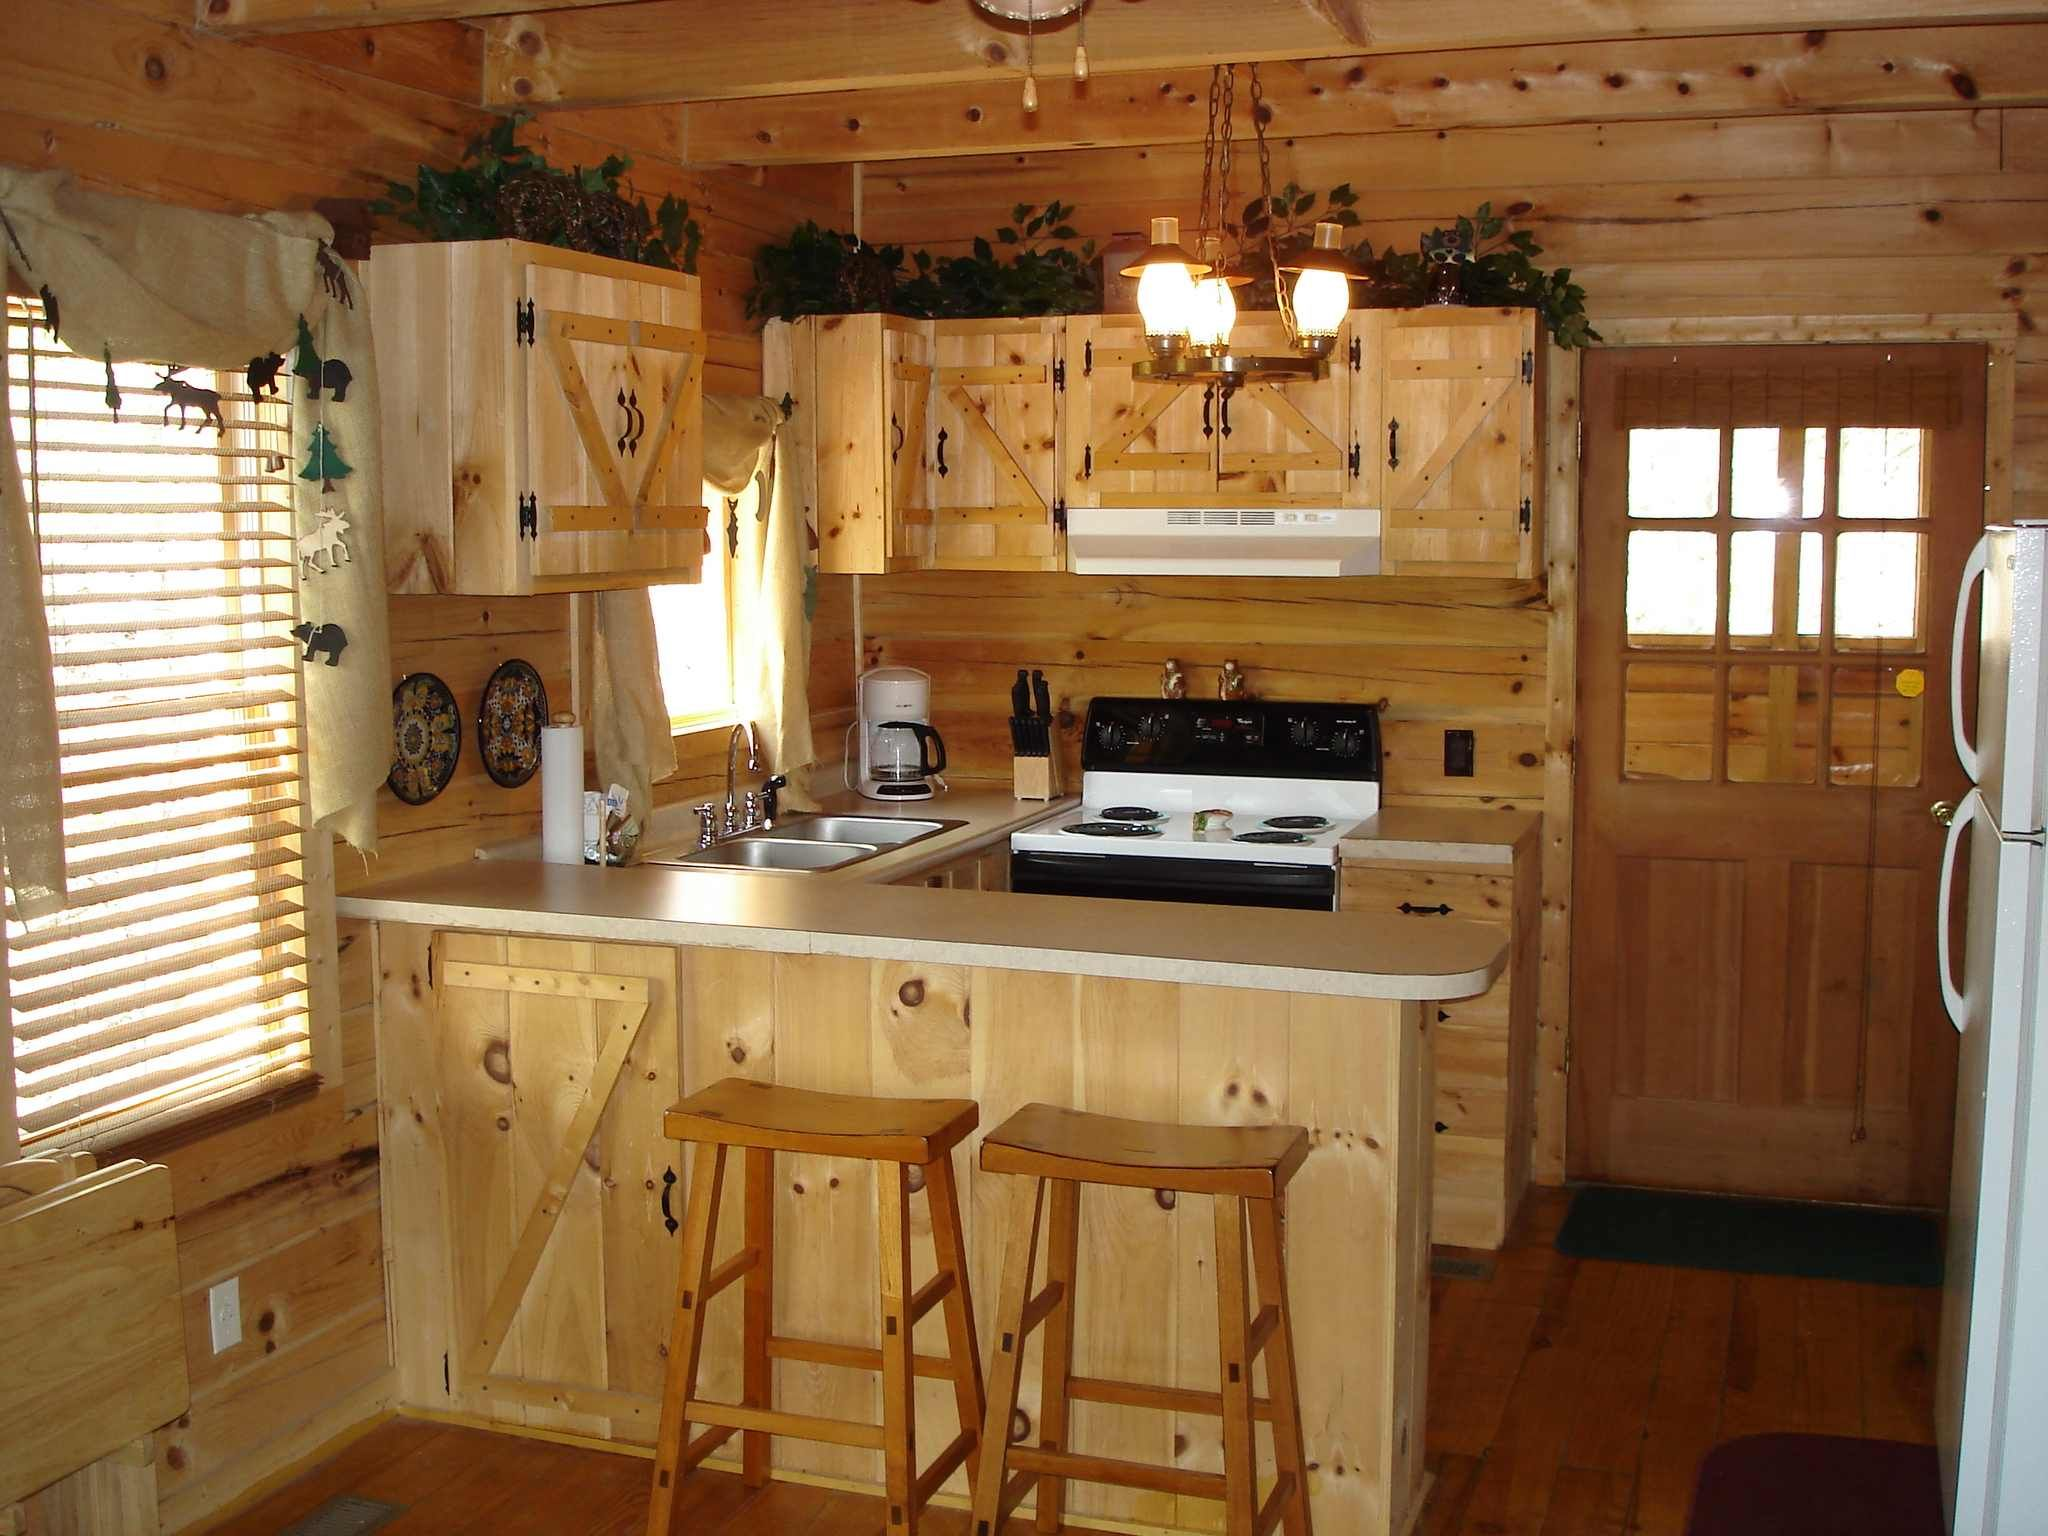 Best 25 Small rustic kitchens ideas on Pinterest